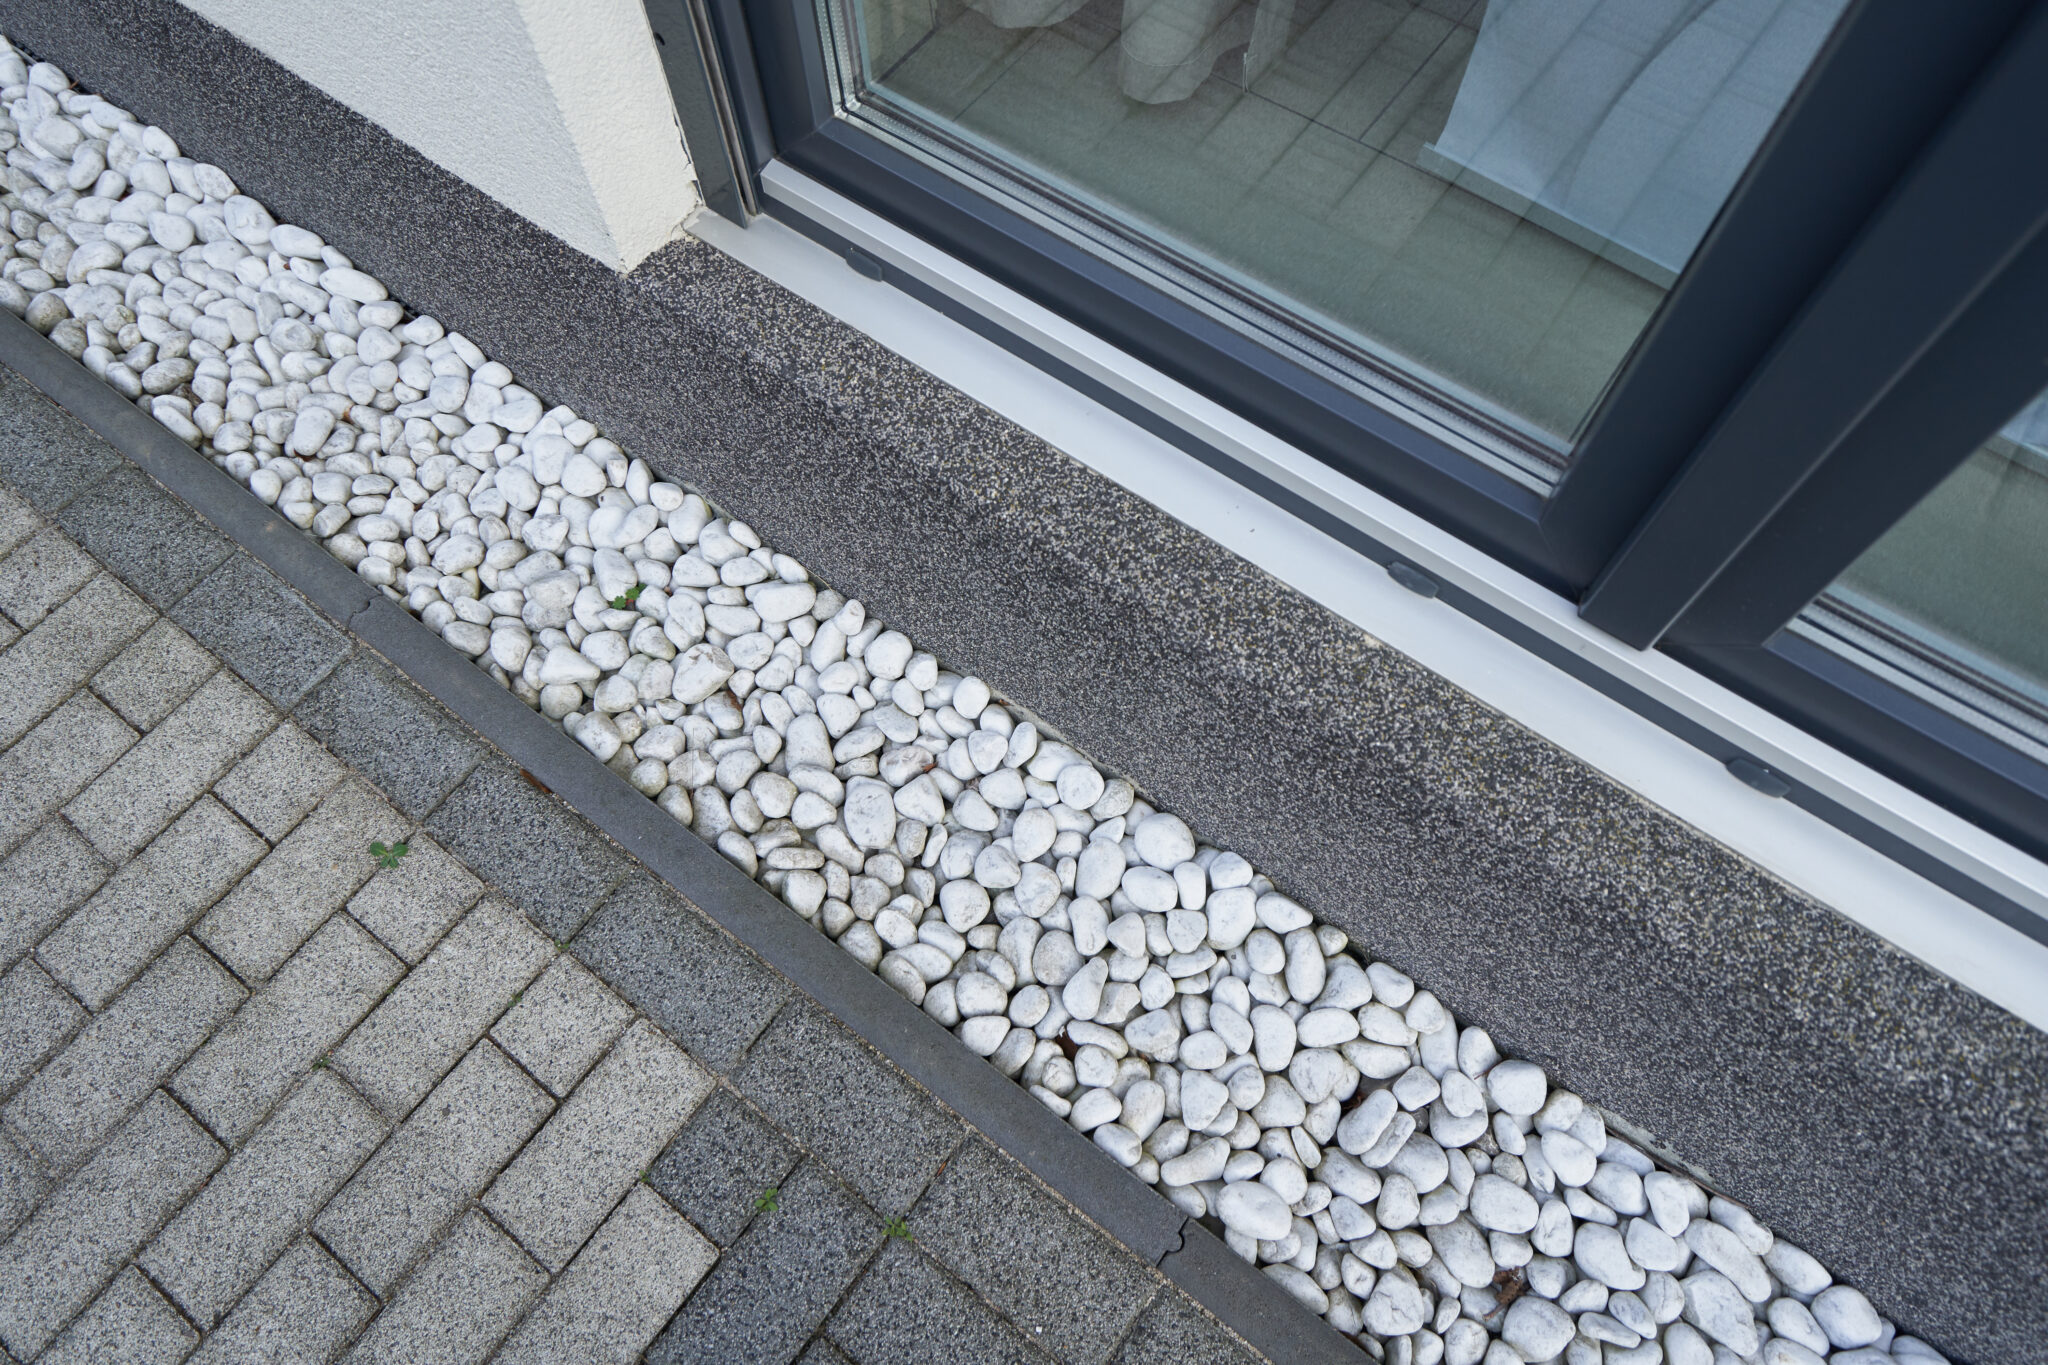 A drainage system lined with pebbles.